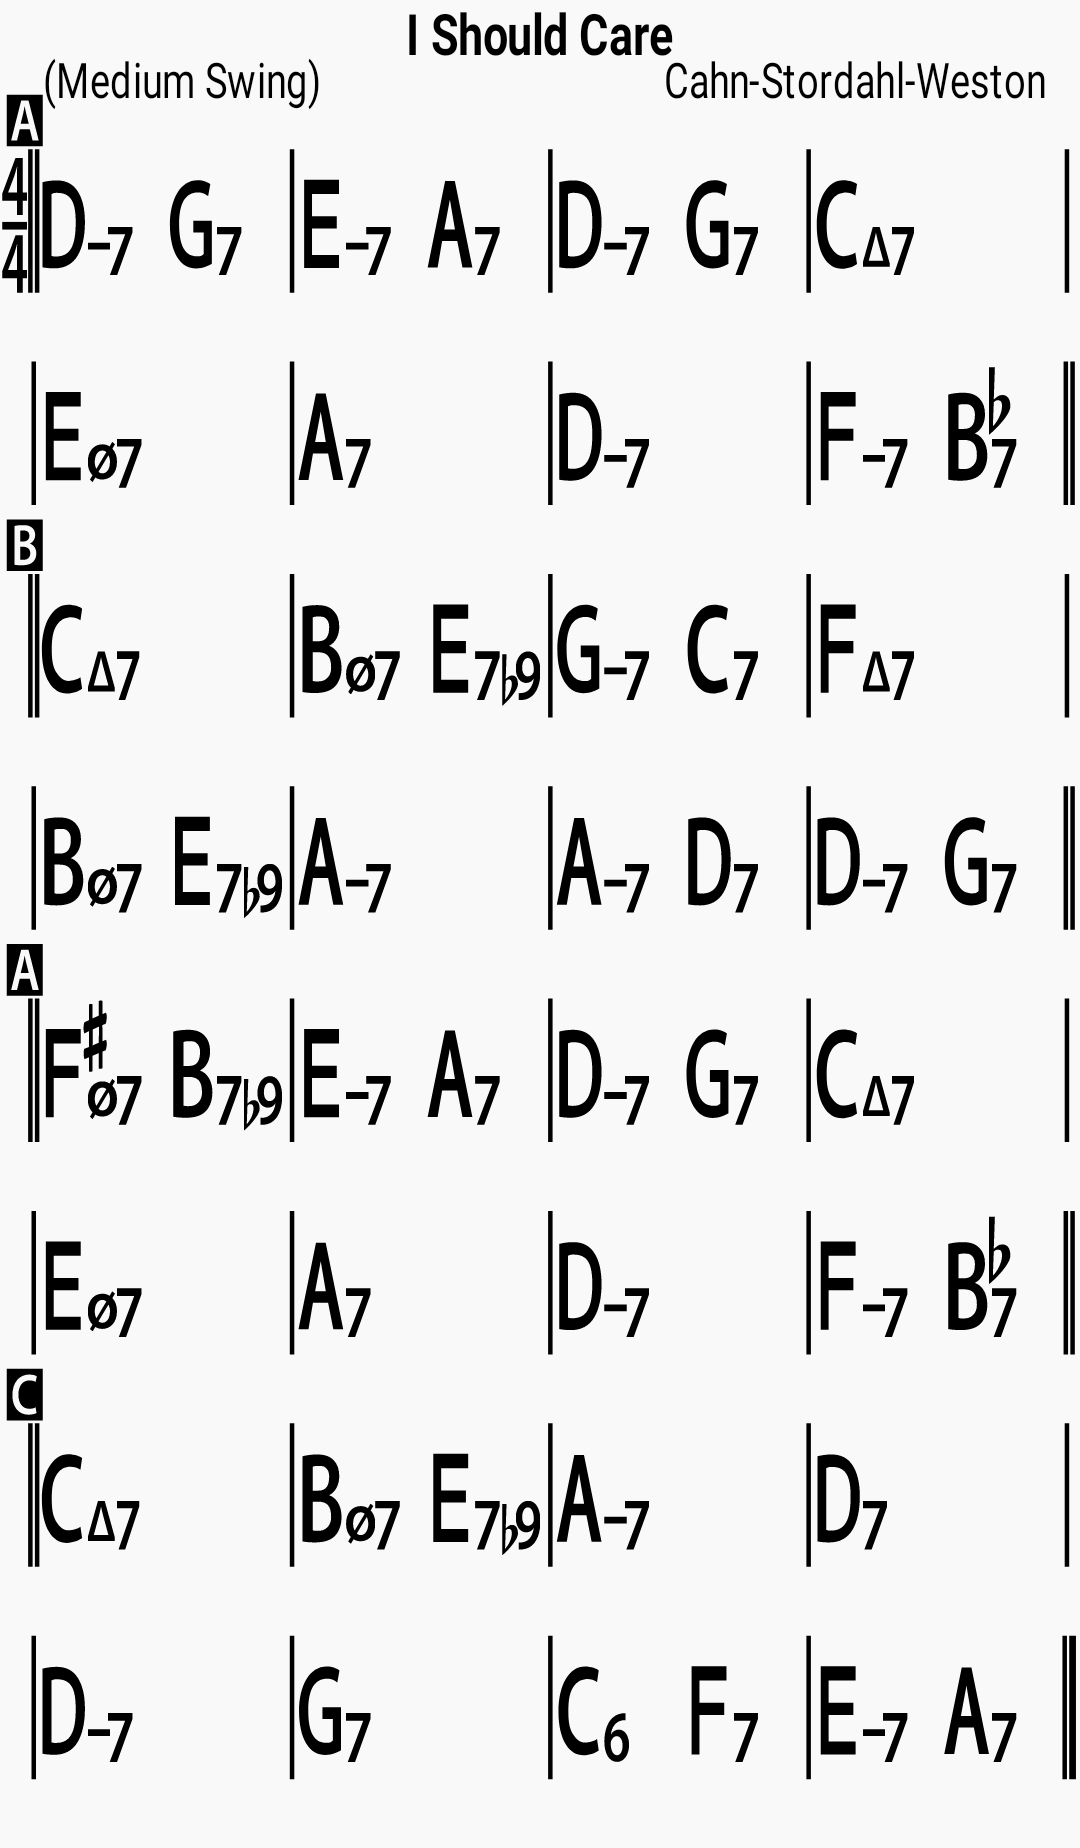 Chord chart for the jazz standard I Should Care